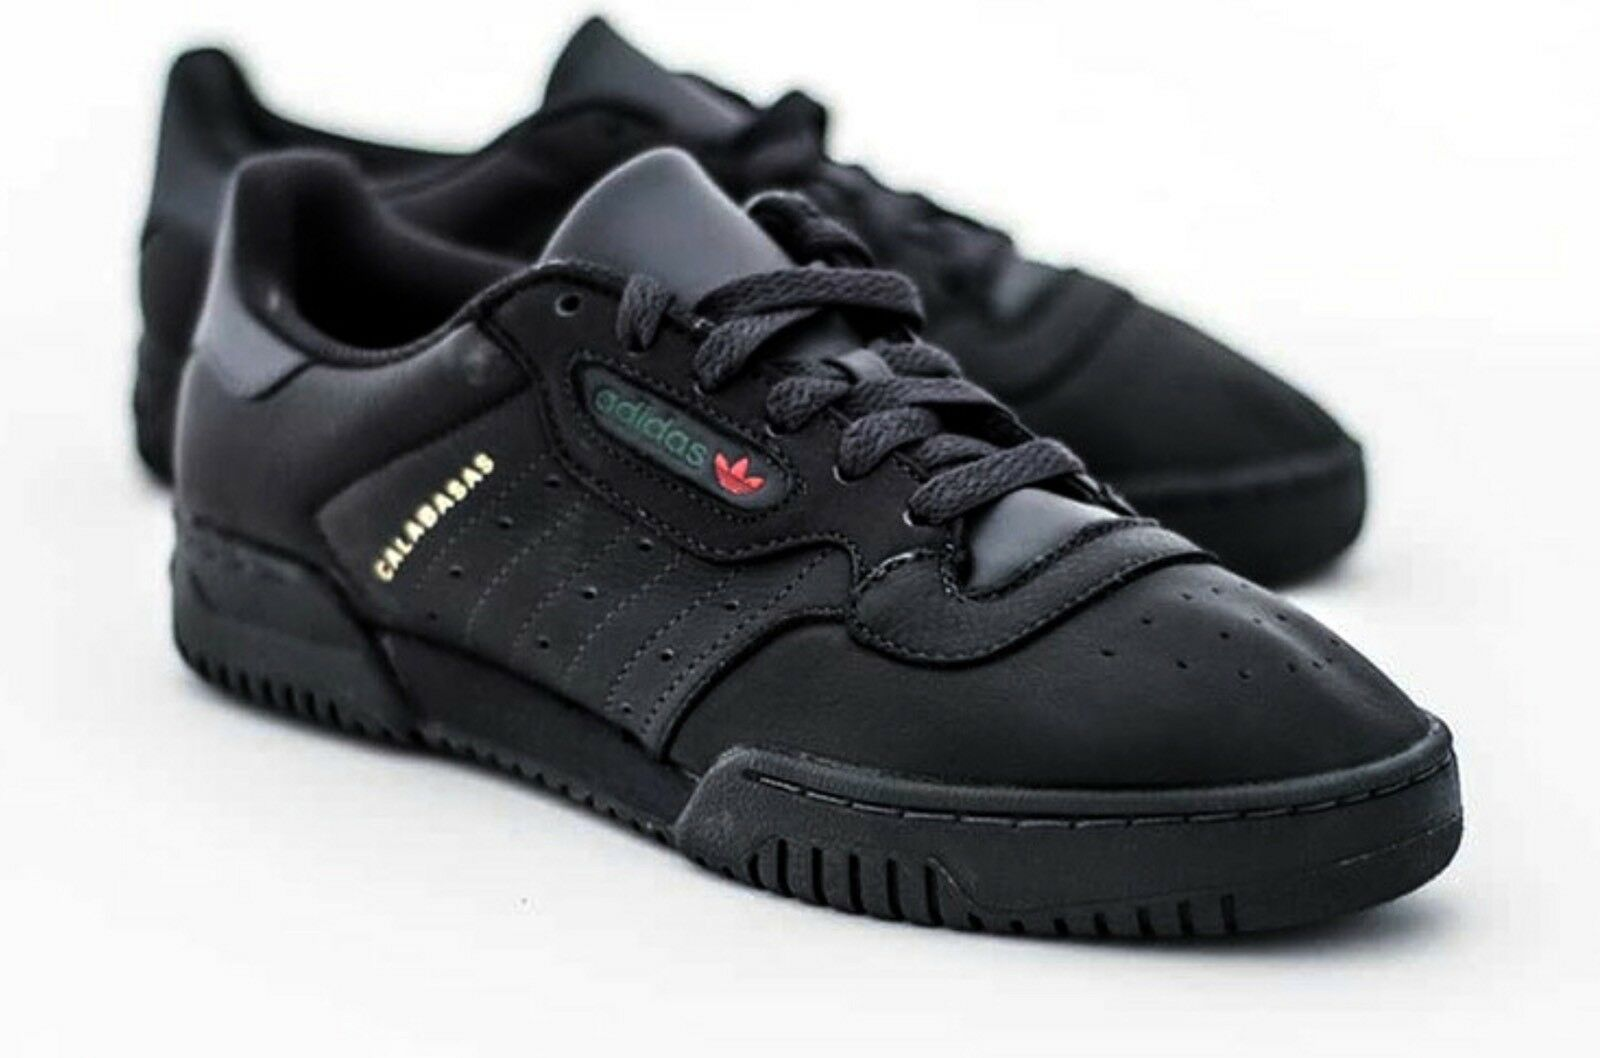 adidas yeezy powerphase calabasas core black off 55% www